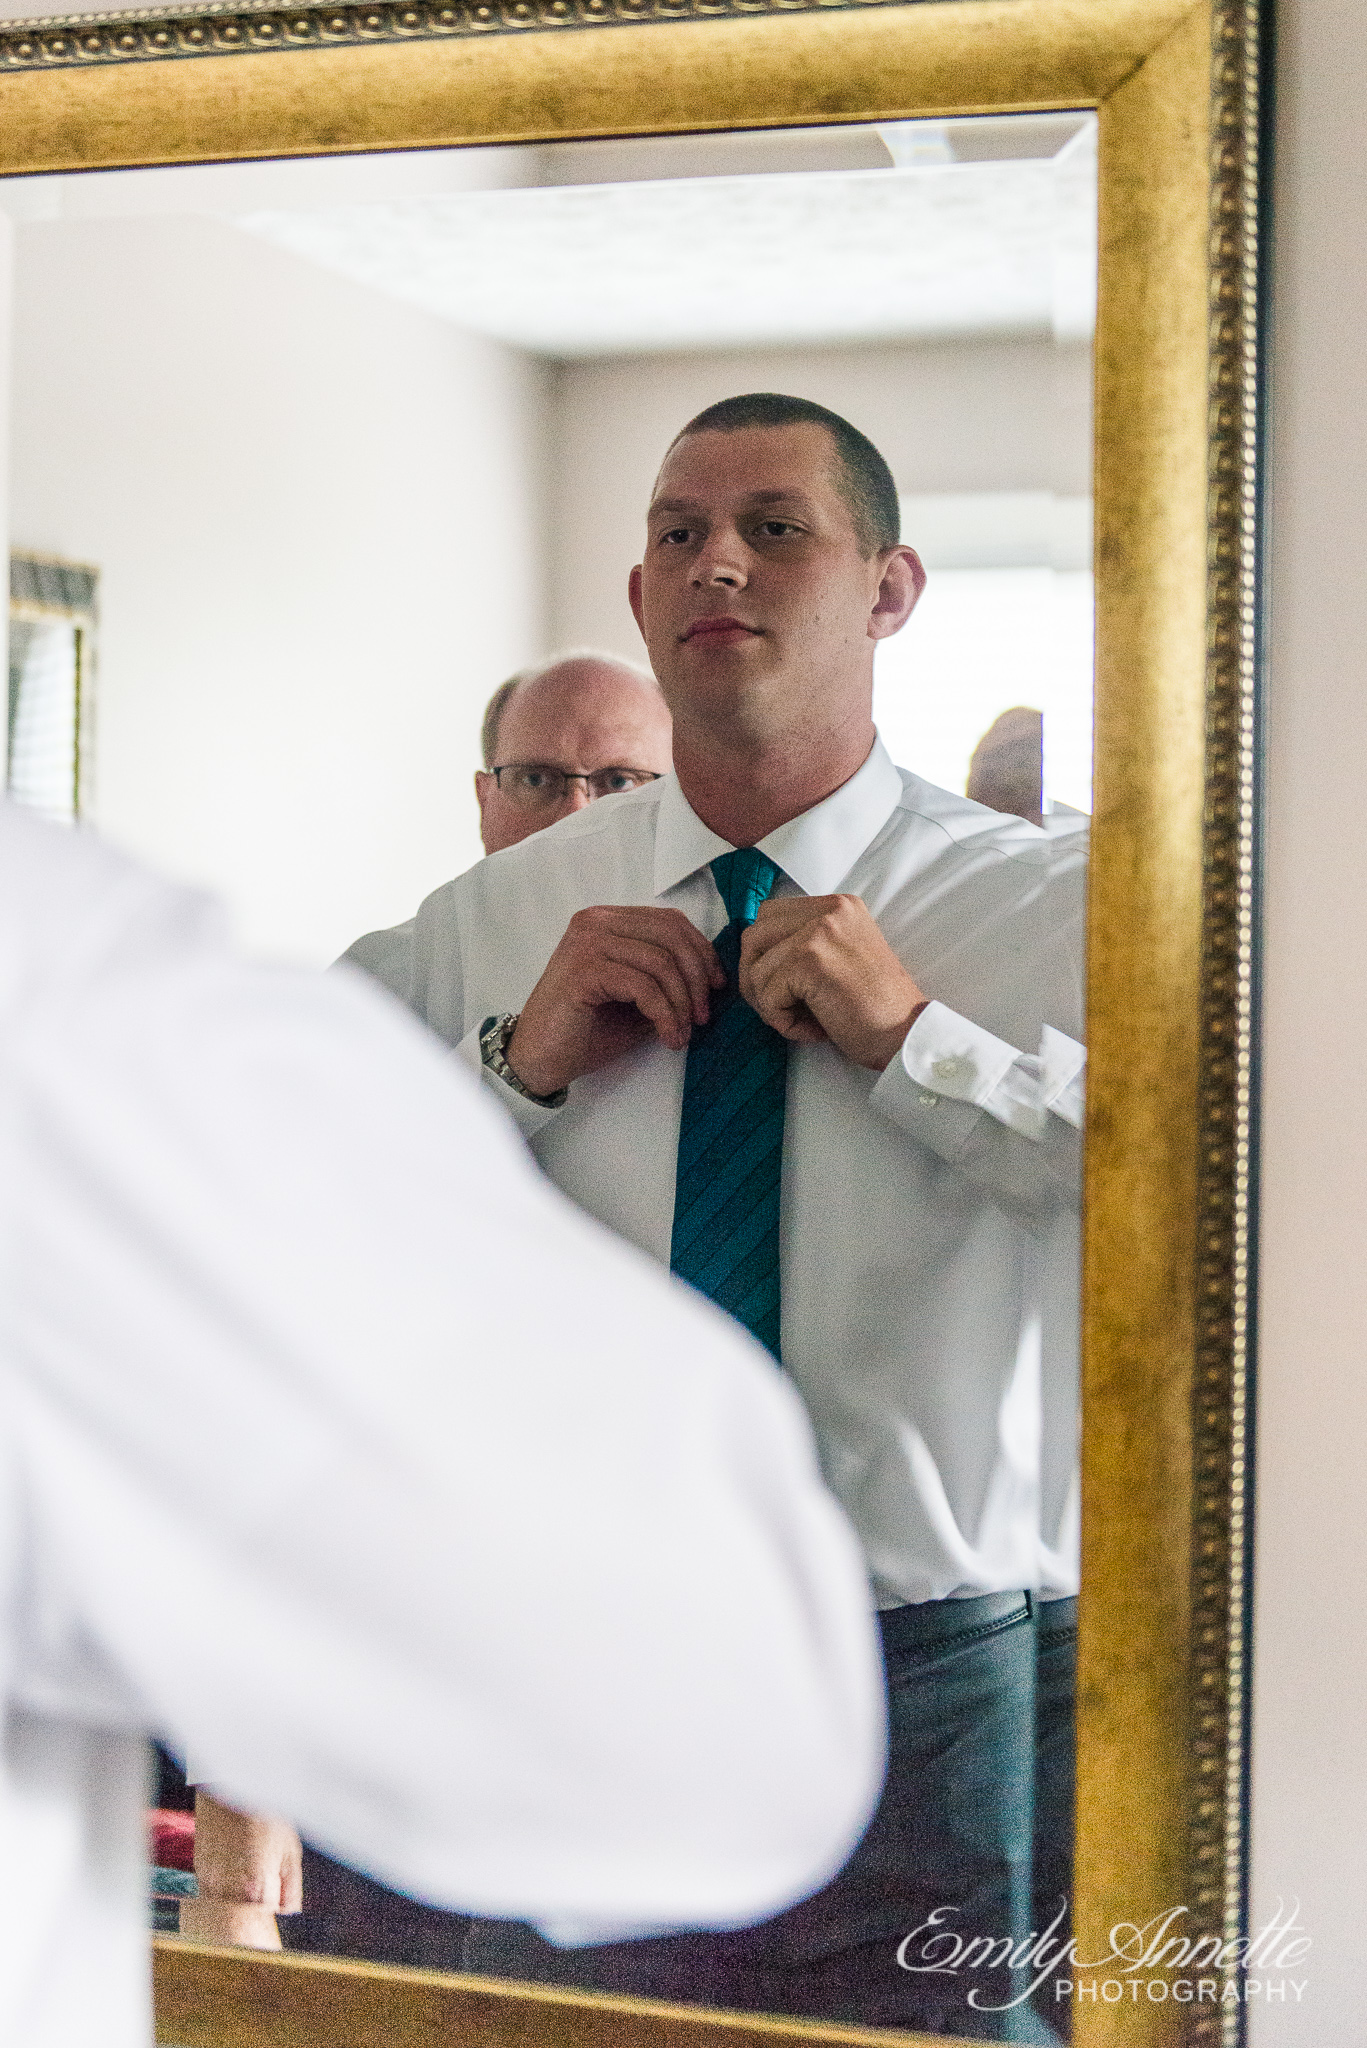 A groom looks through a mirror and adjusts his tie while getting ready before his wedding ceremony at Amber Grove near Richmond, Virginia